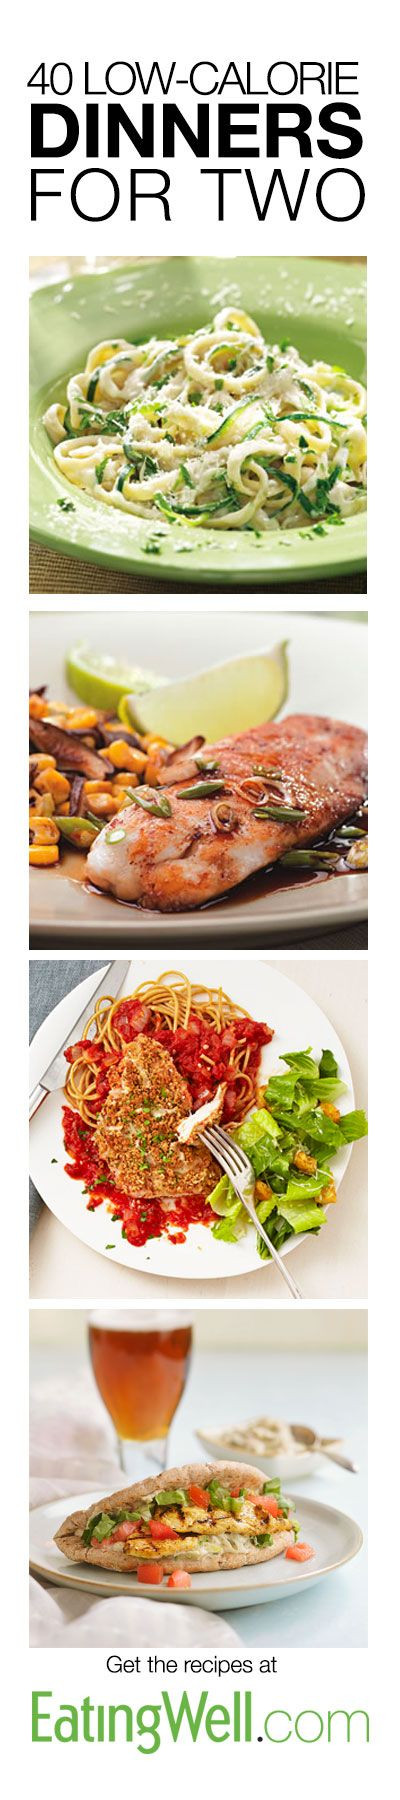 Low Calorie Dinners For Two  Best 25 Low calorie dinners ideas on Pinterest